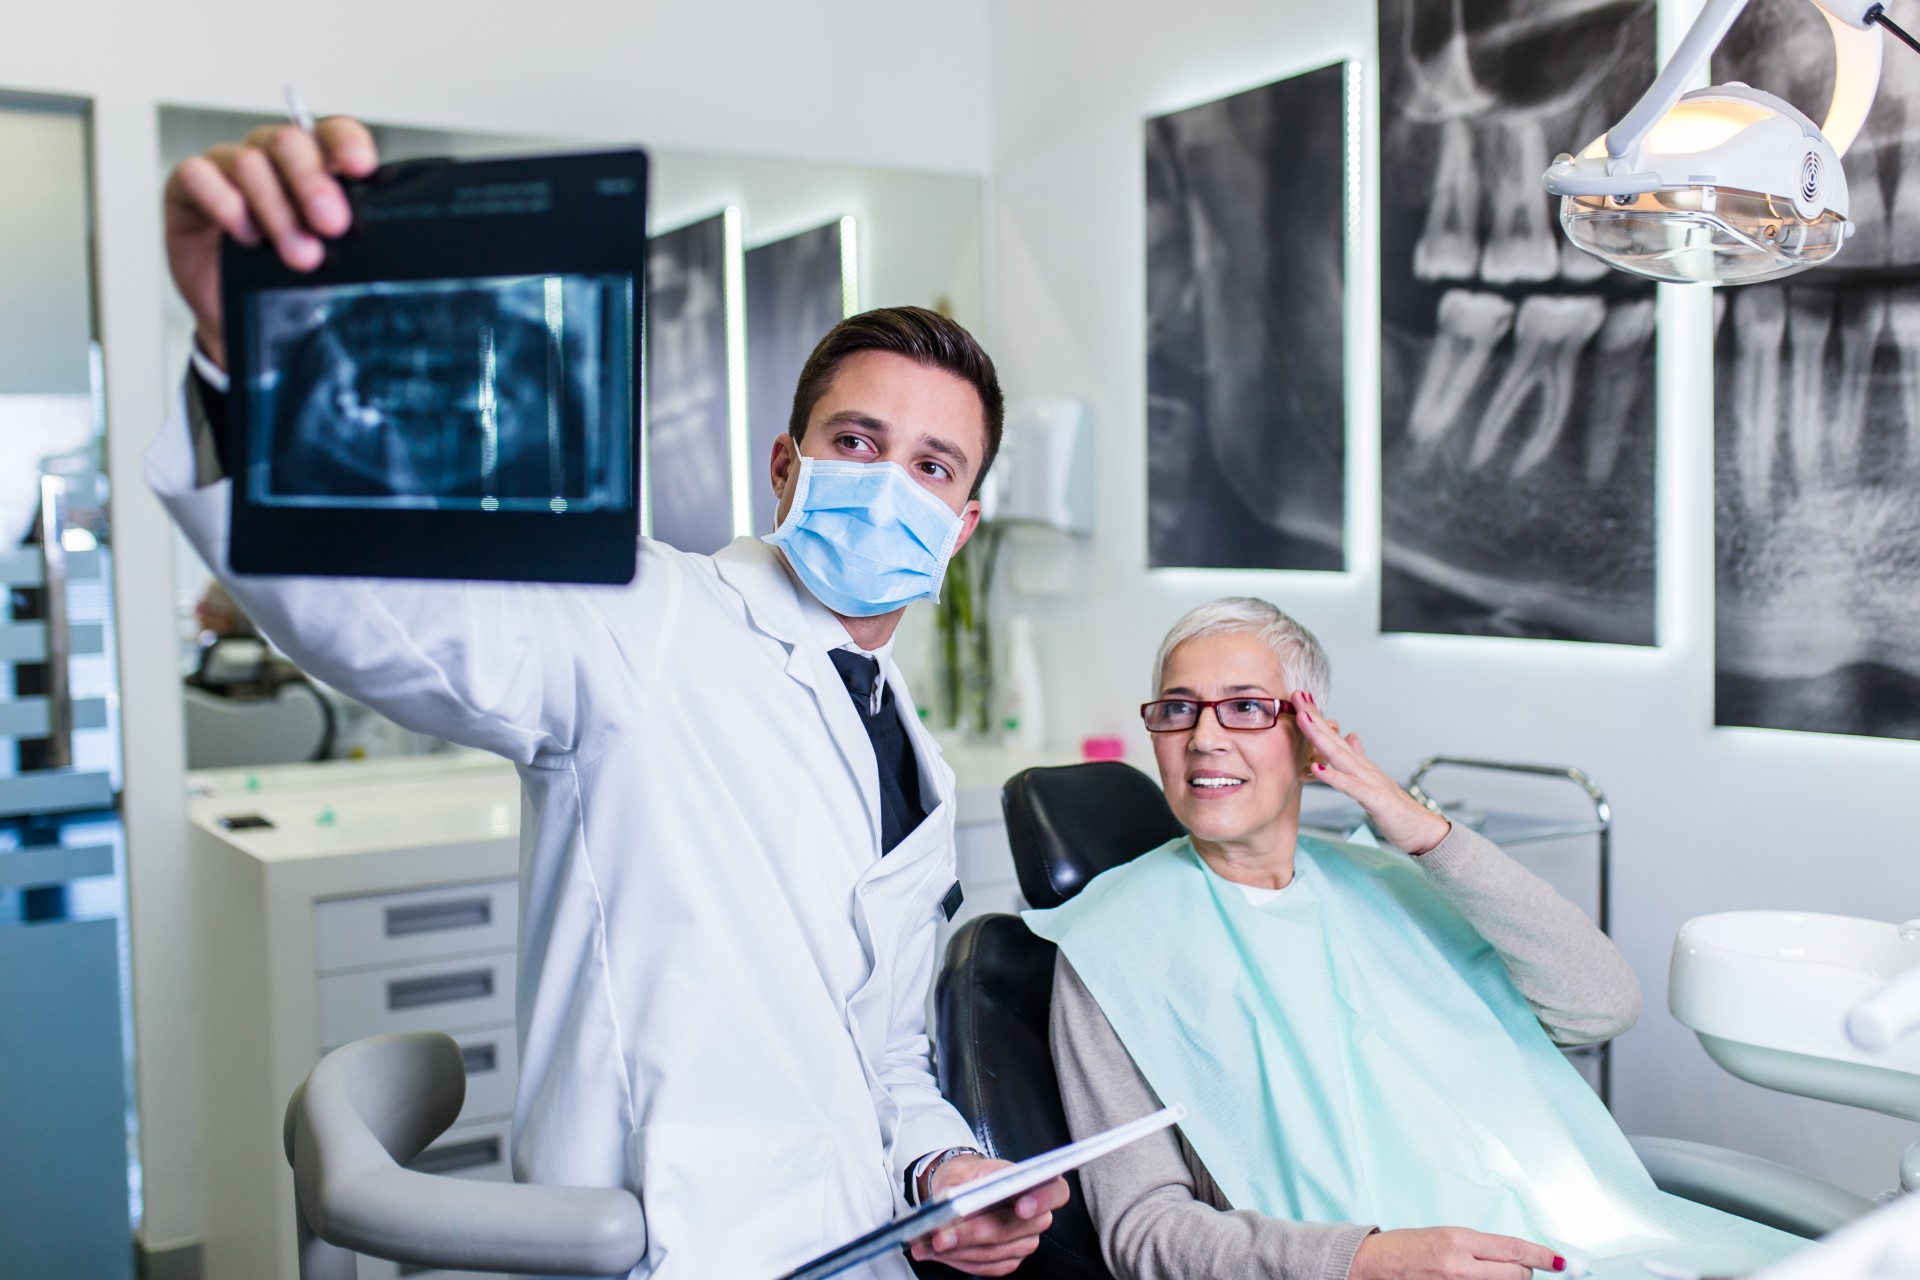 Dentist Showing Xray To Patient